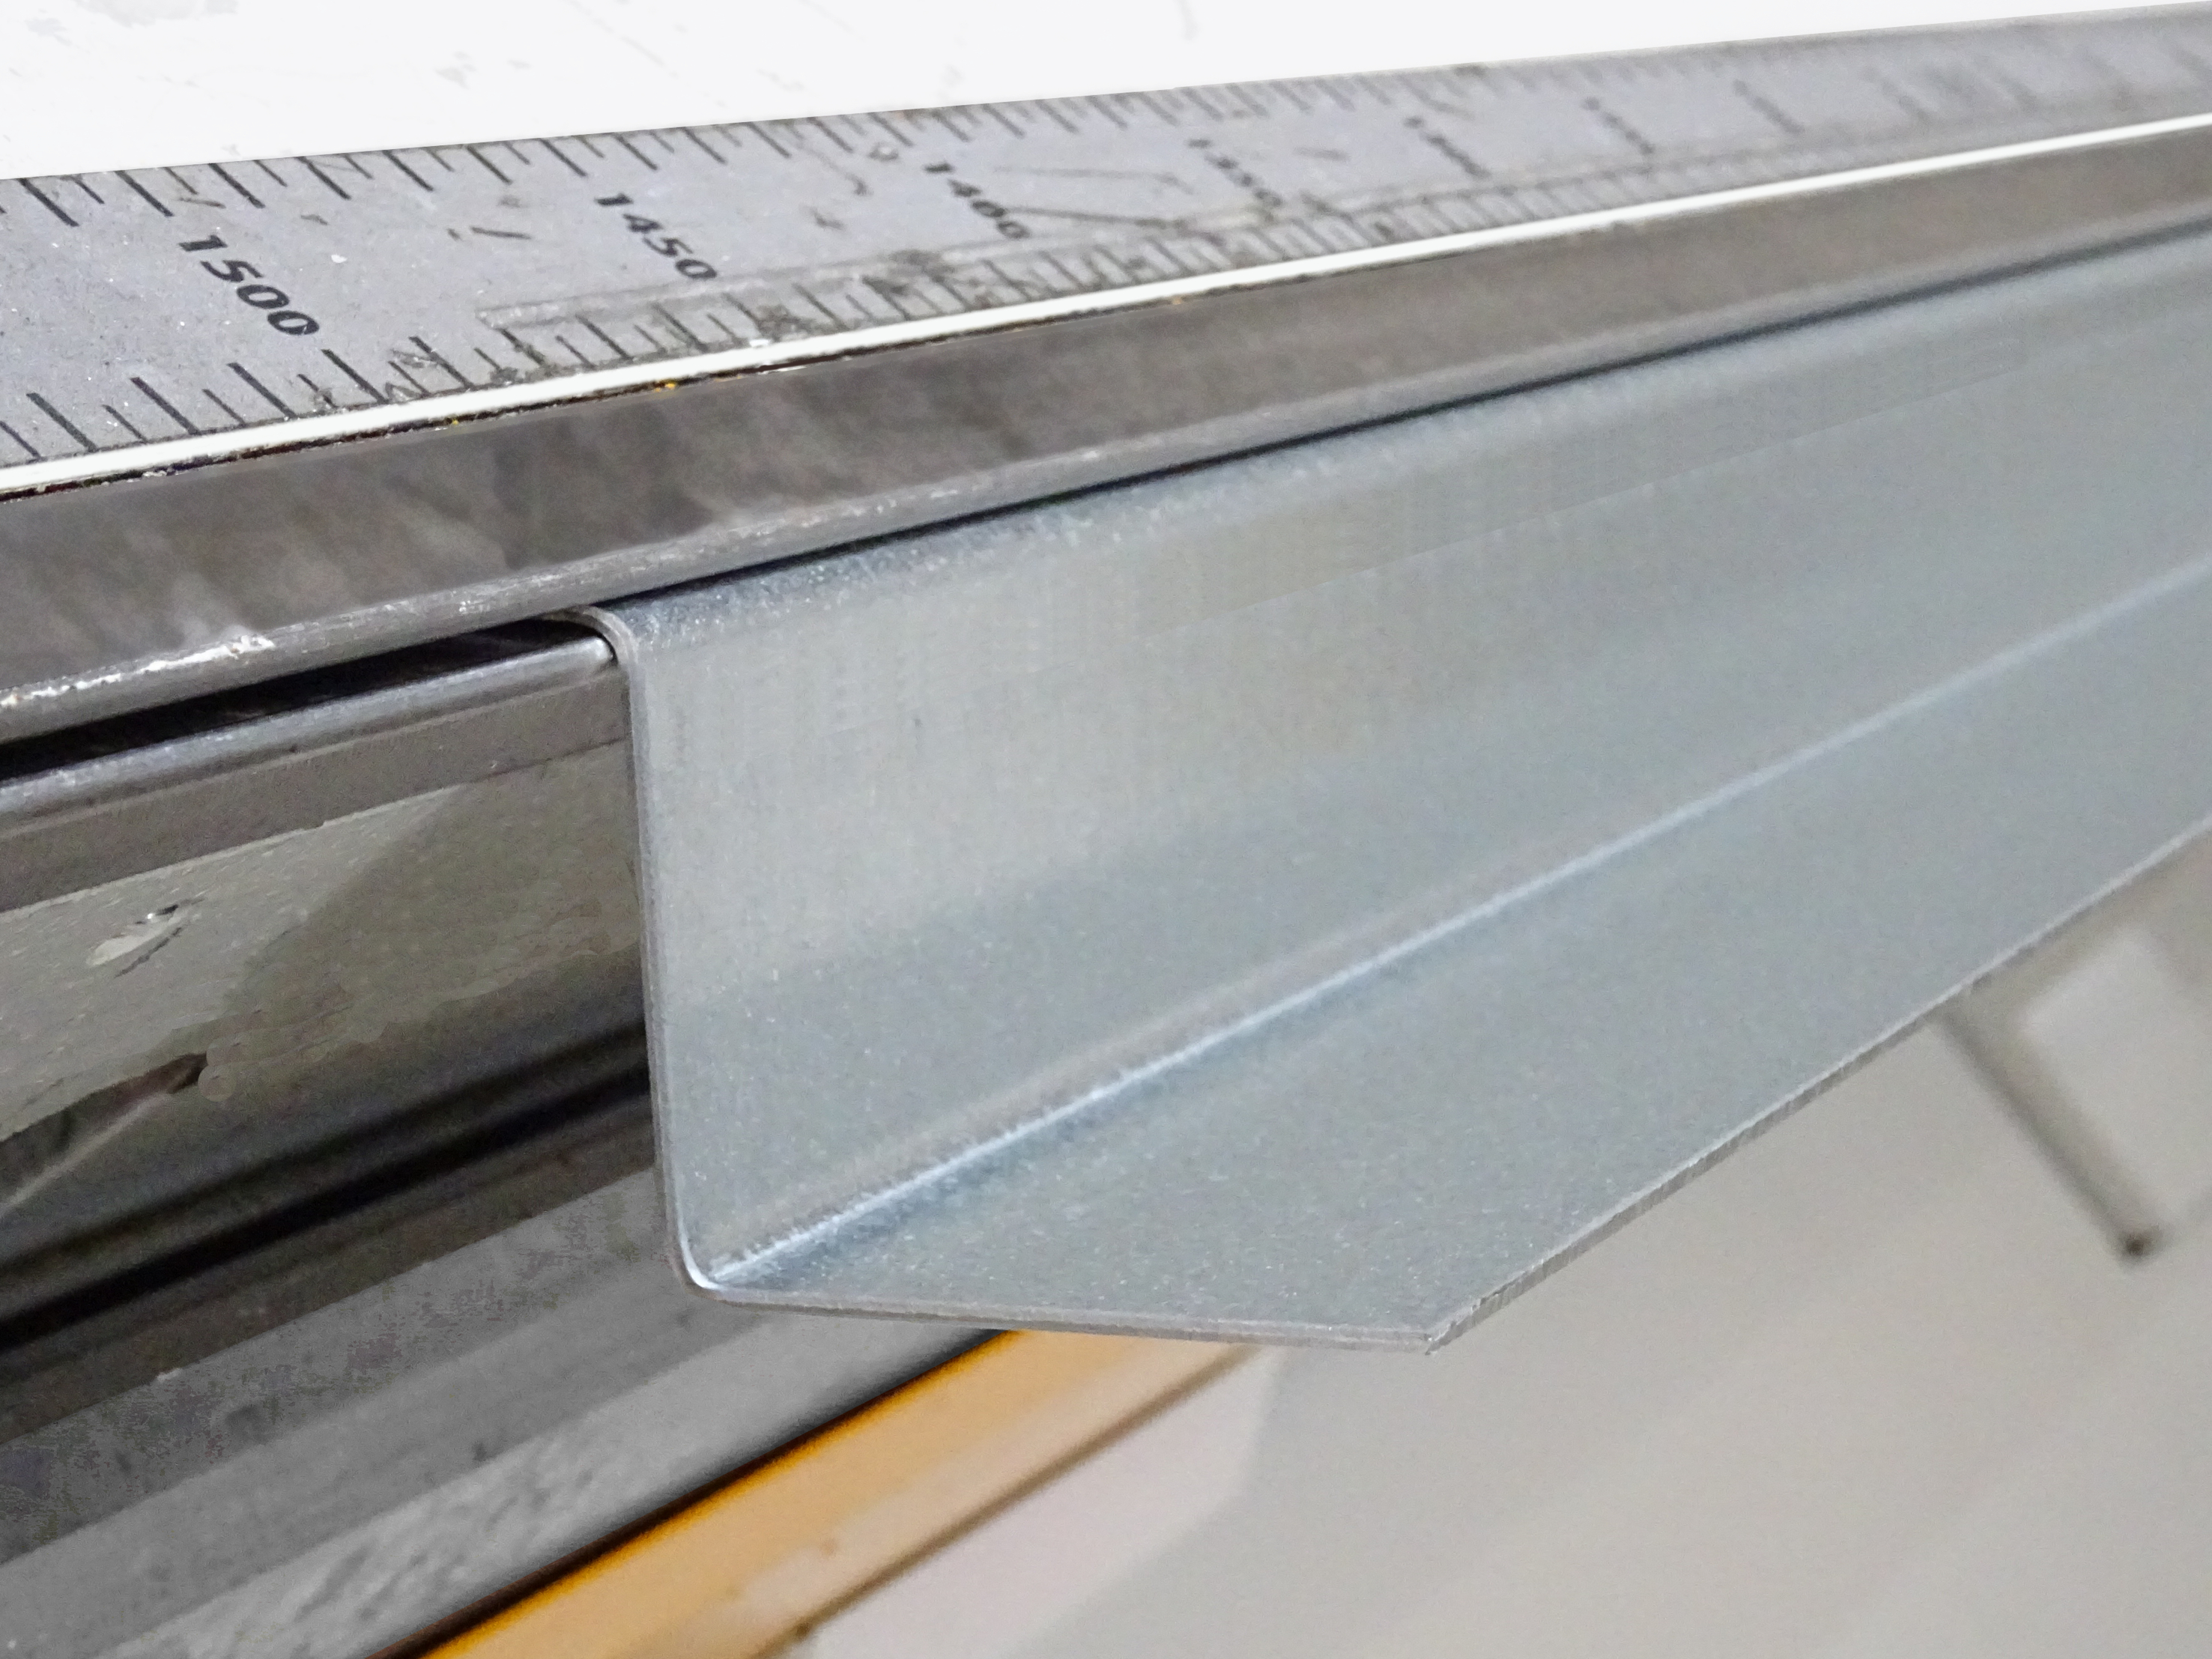 The XL-Center bending a 1.5 mm mild steel profile